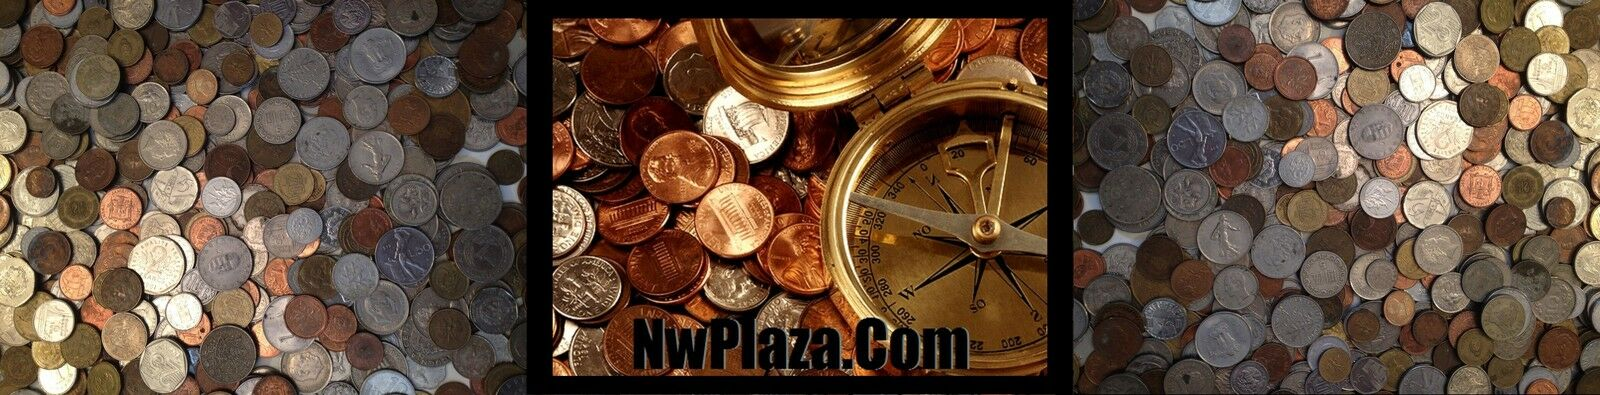 NwPlaza Antique Coin Buyers